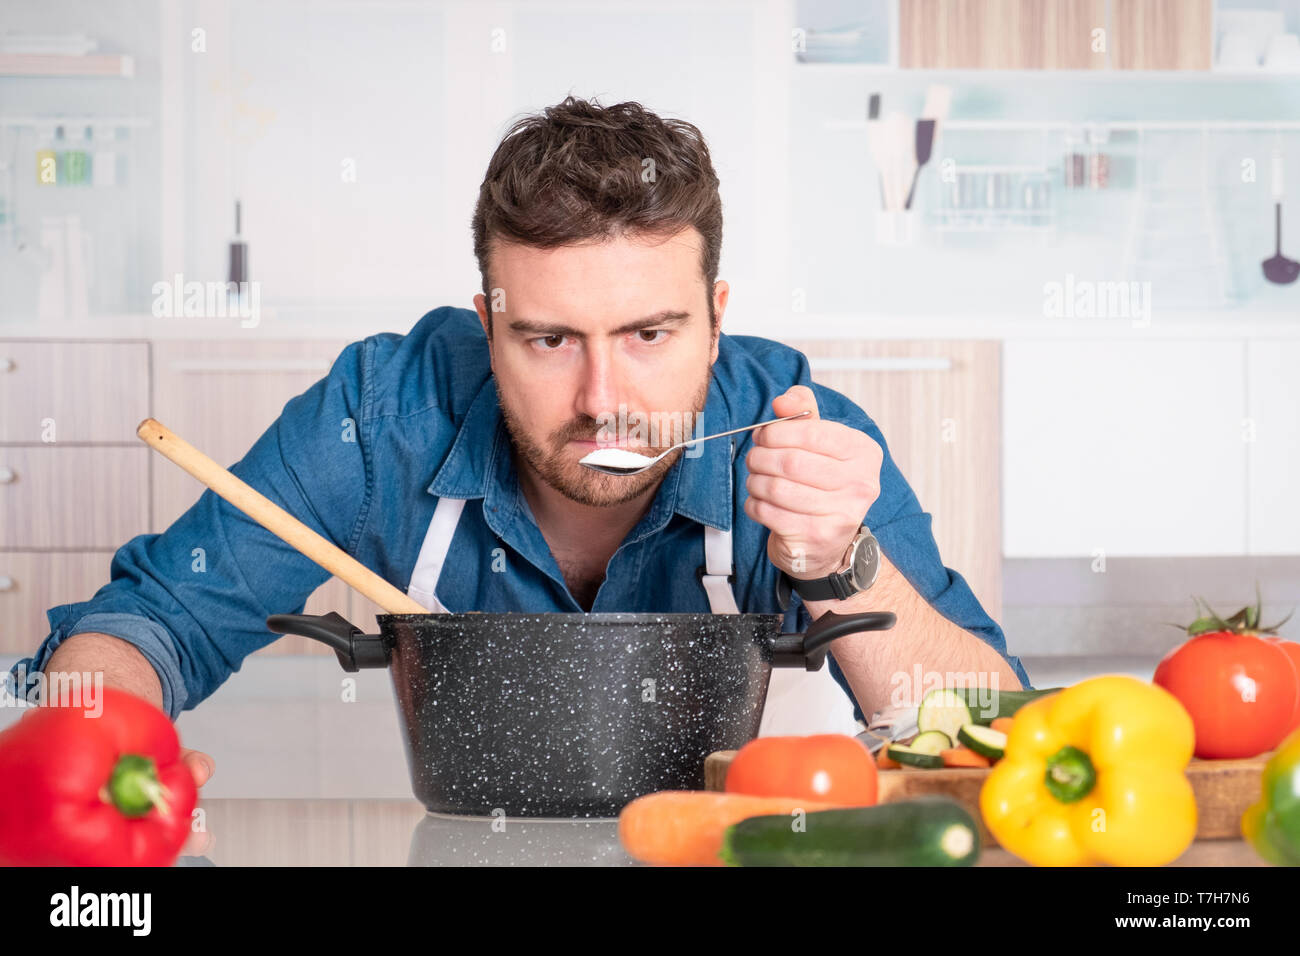 Concentrated young man preparing food at home - Stock Image